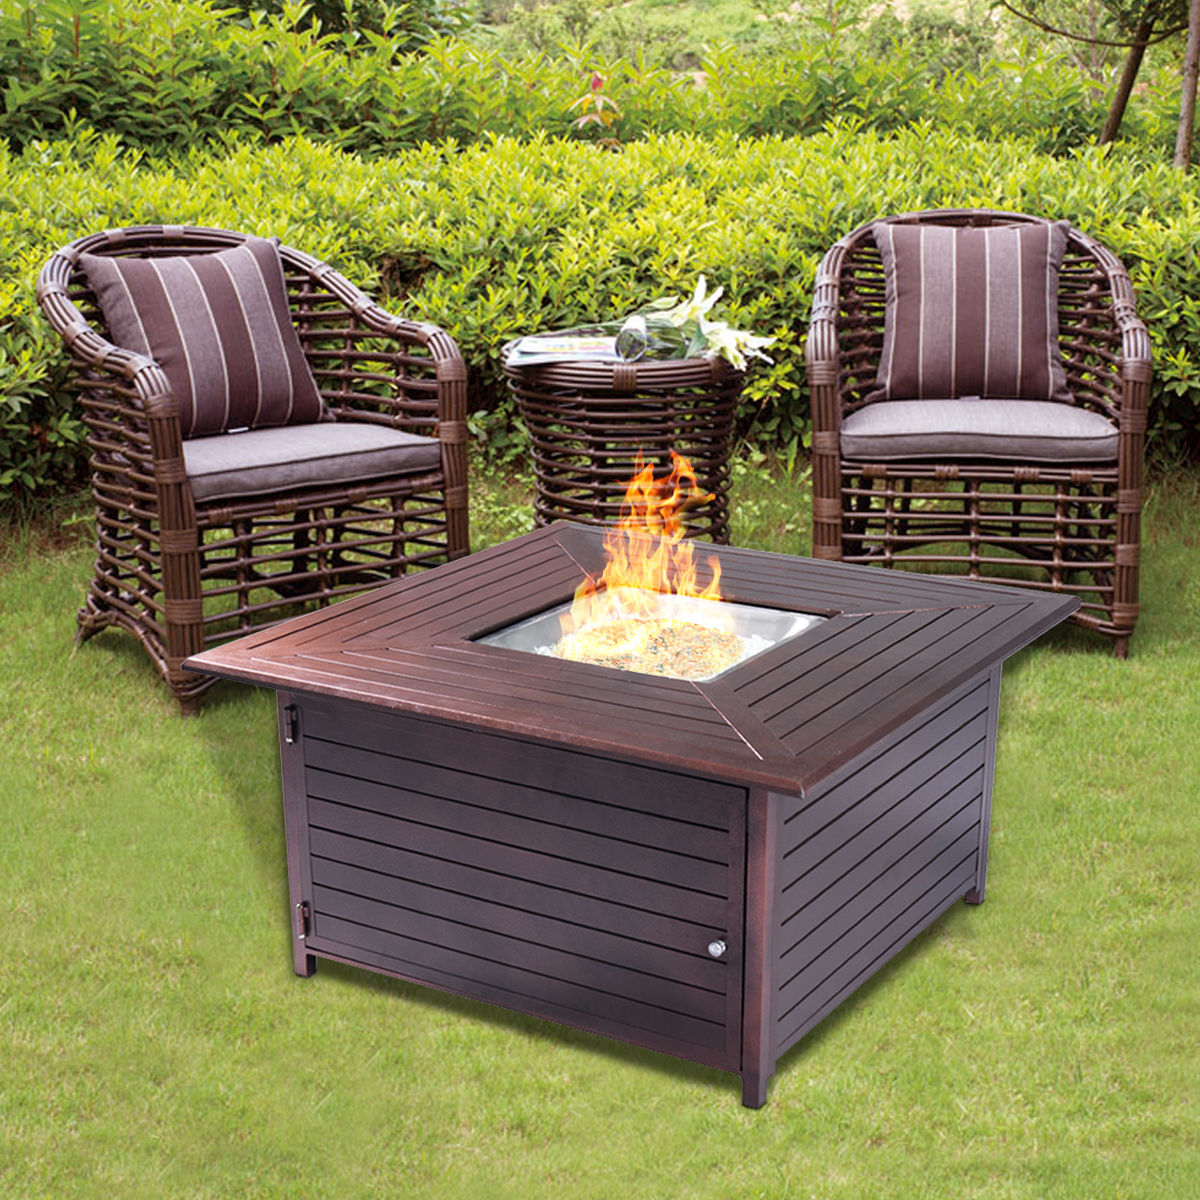 Costway 40000BTU Aluminum Propane Gas Outdoor Firepit Table Stove Furniture W Lid by Costway